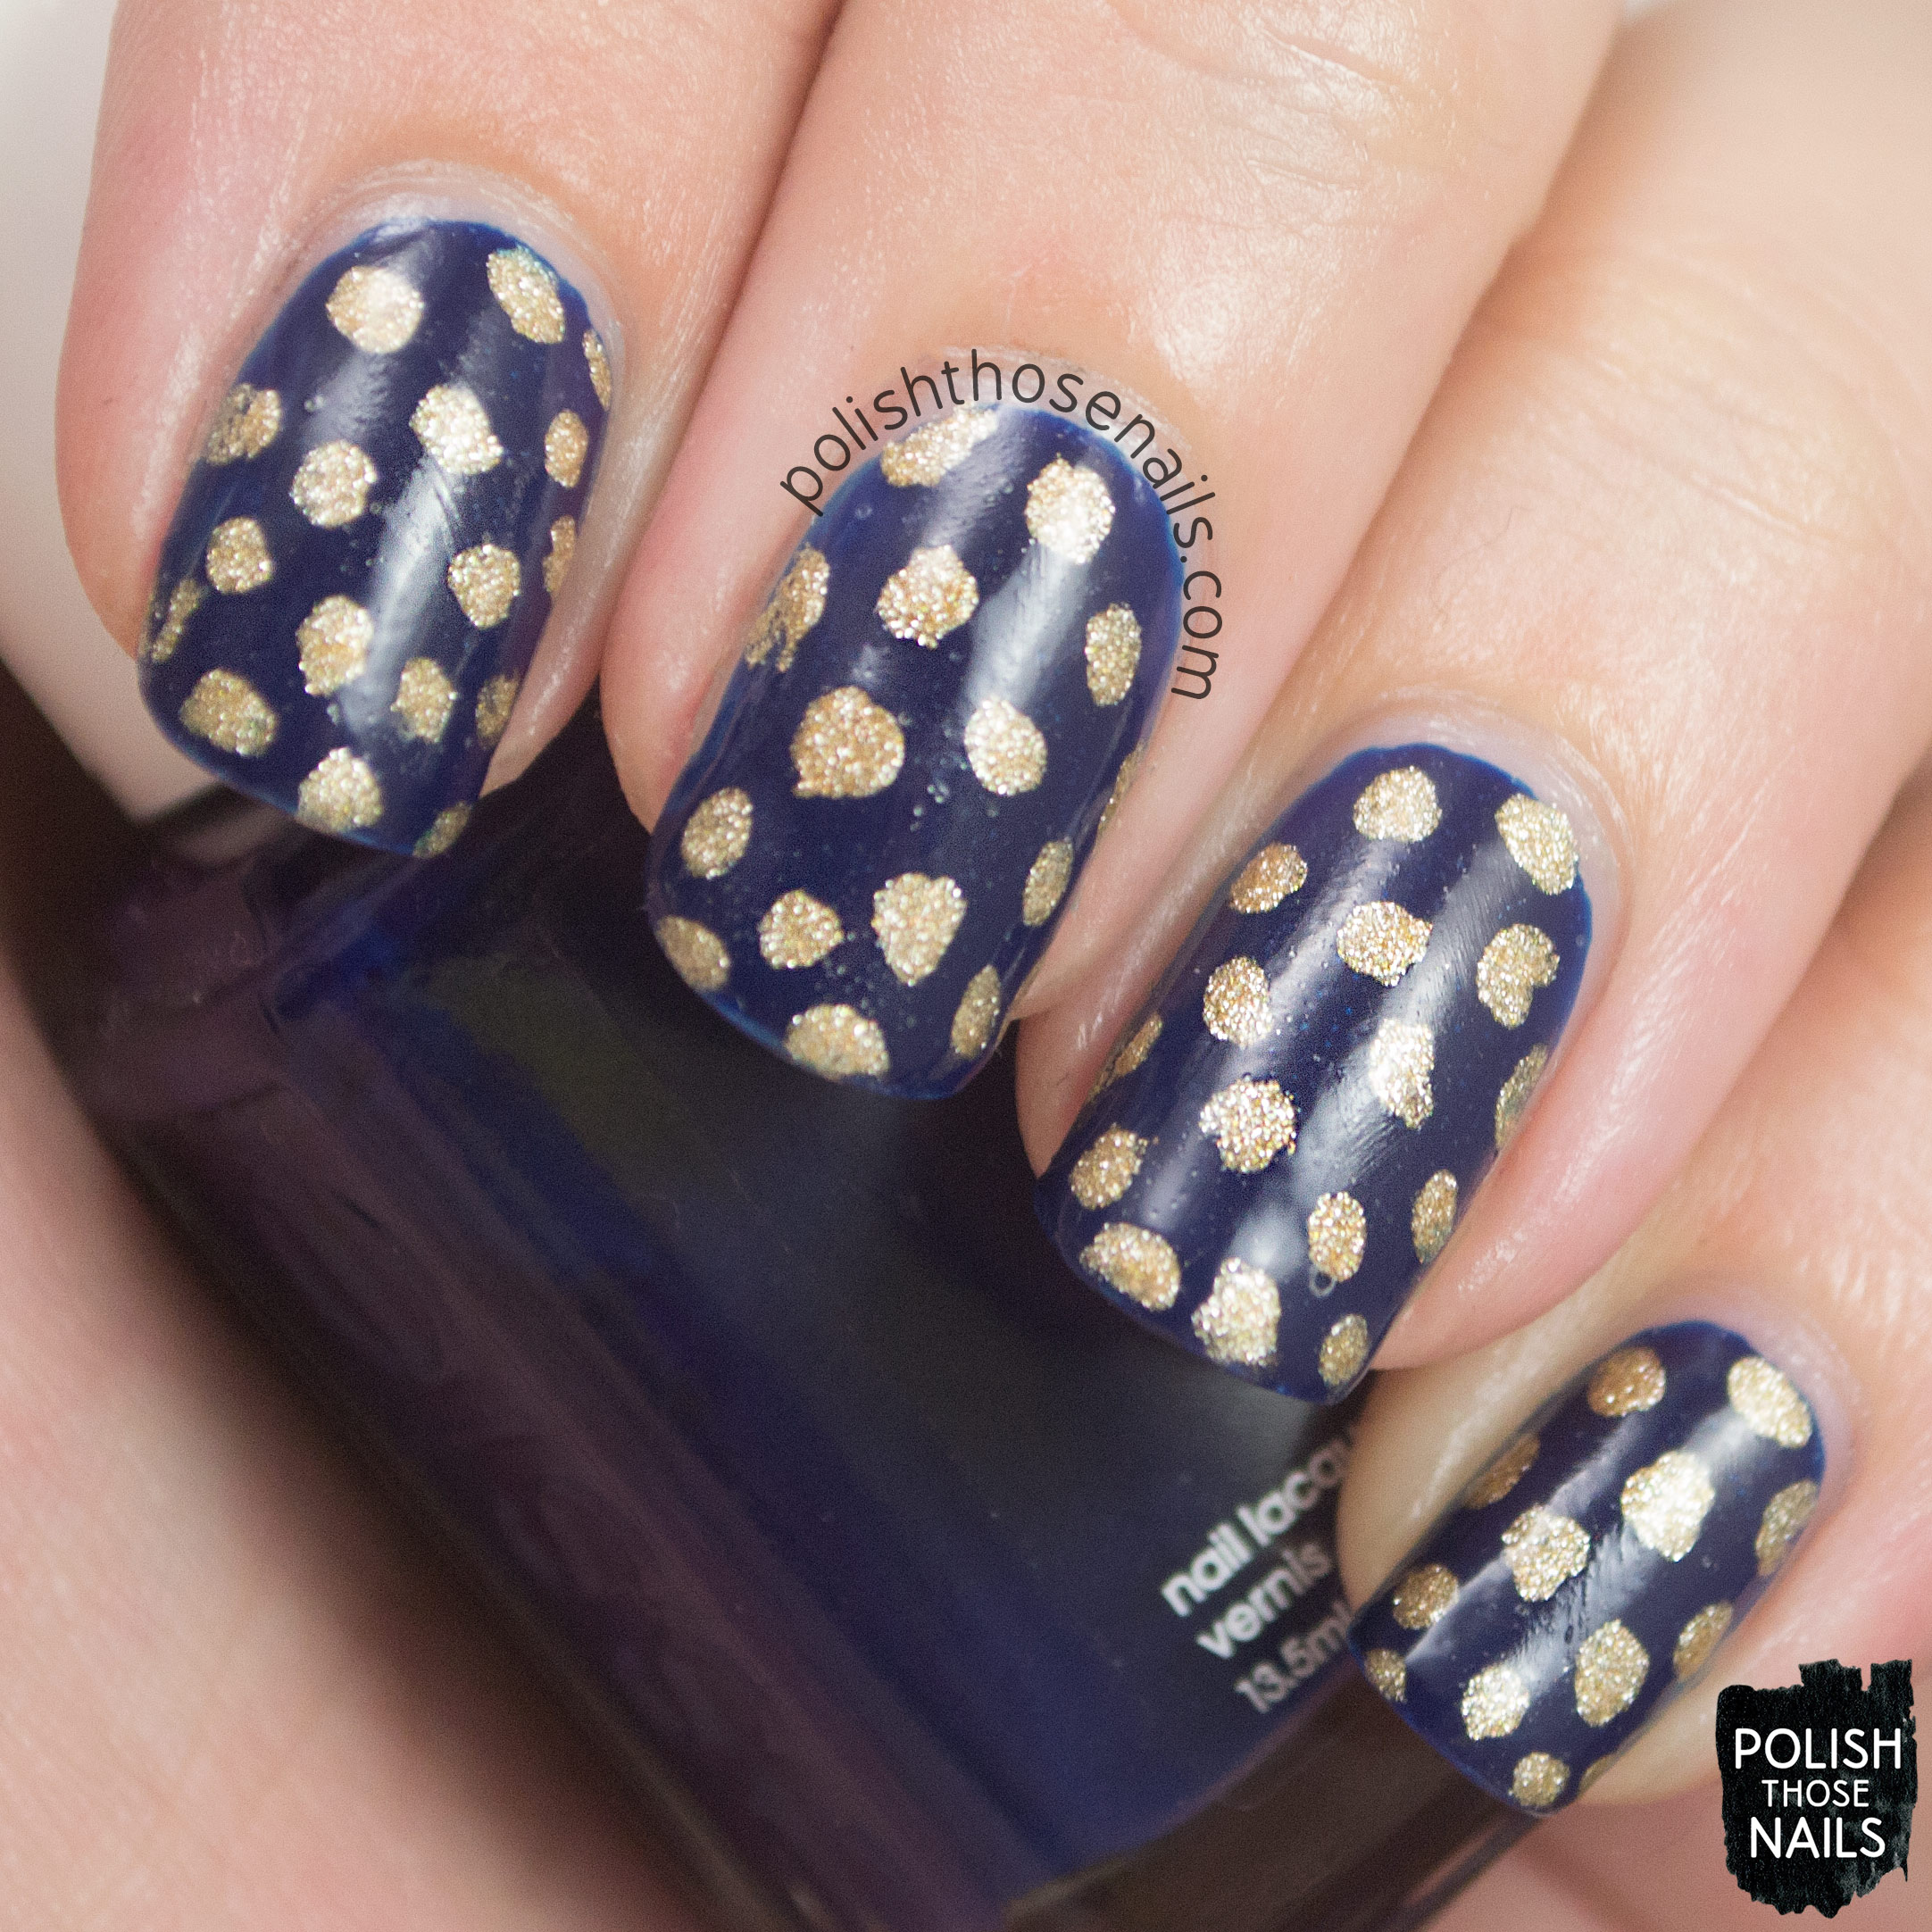 31dc 2015 Polka Dots Polish Those Nails